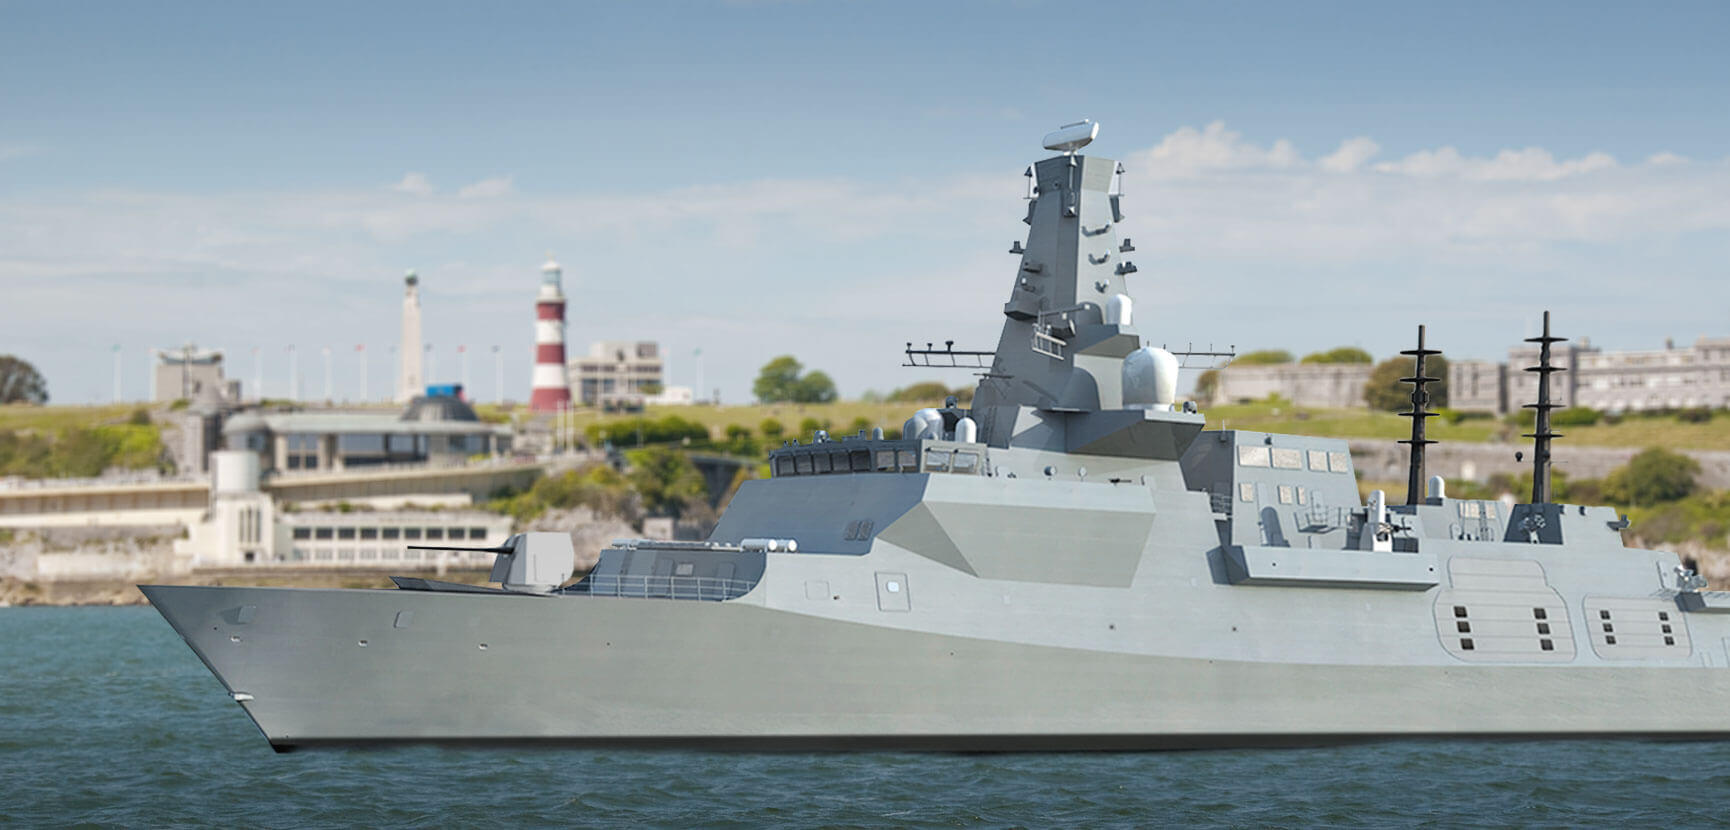 Will the Type 26 frigates be based in Devonport?